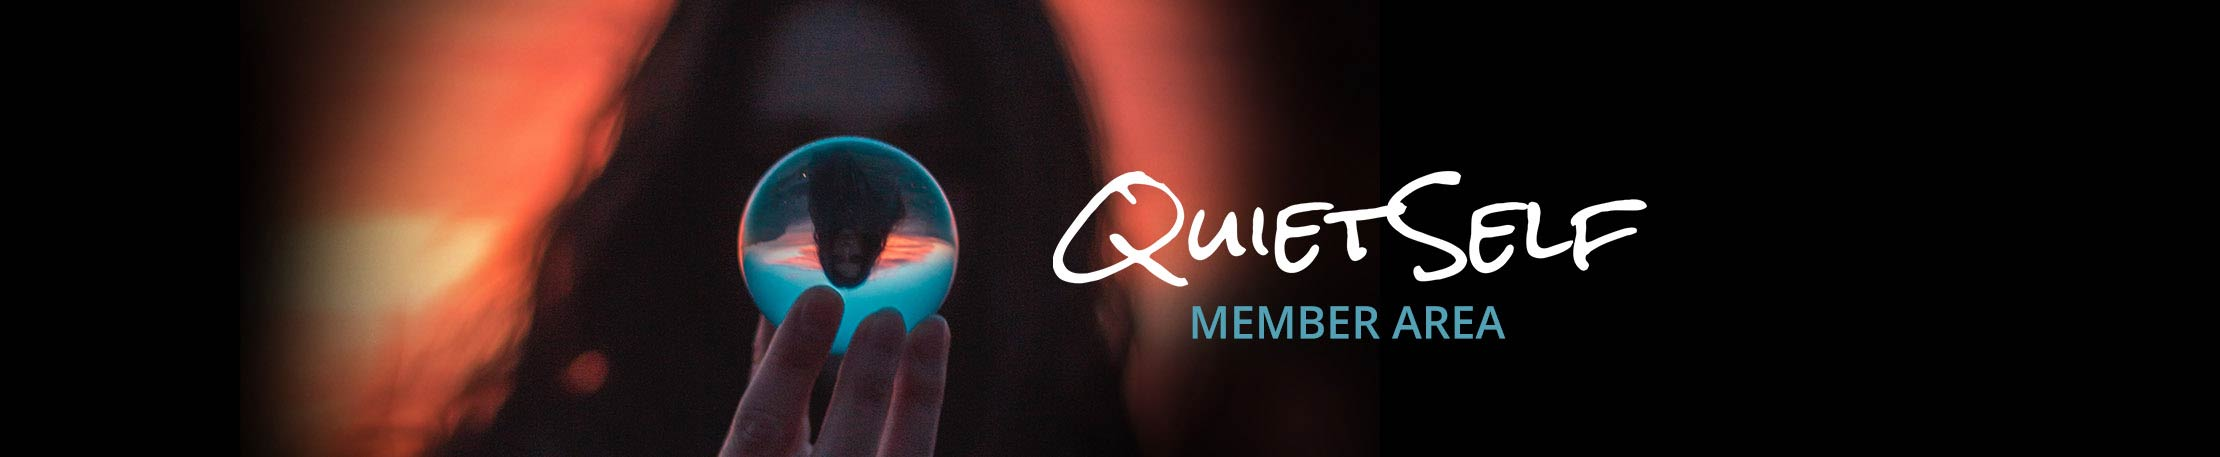 Member's Area Header Image for QuietSelf